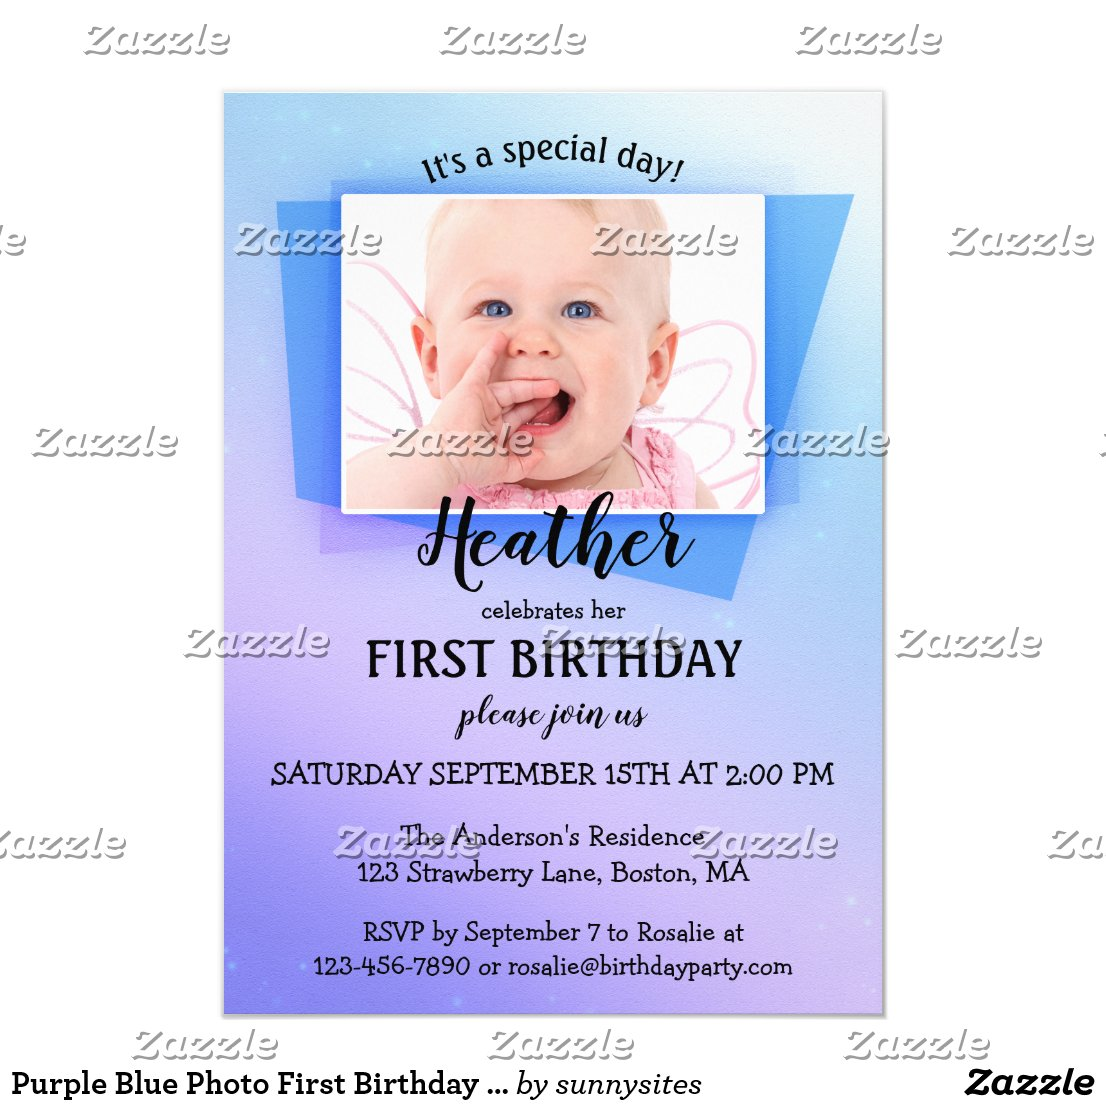 Purple Blue Photo First Birthday Party Invitation